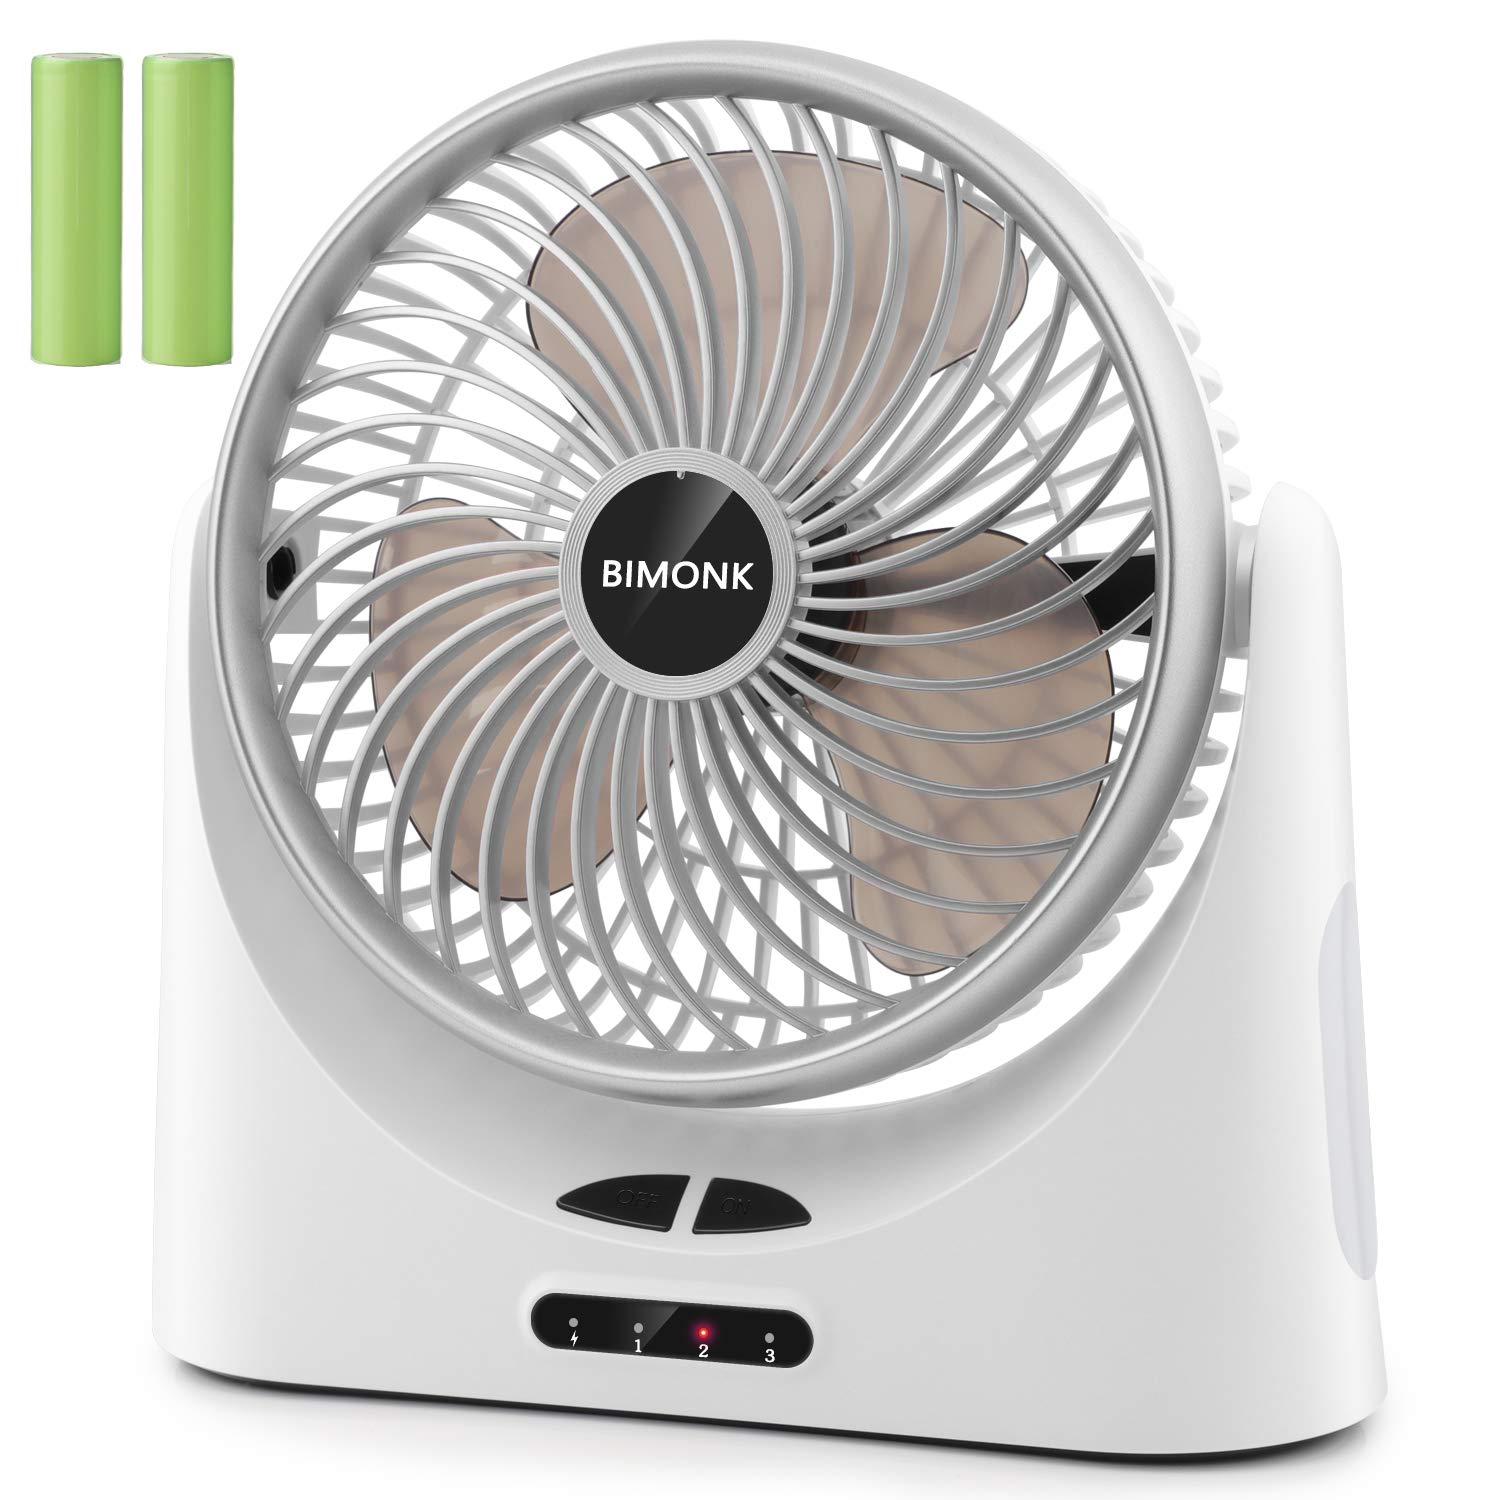 Battery Operated Fan, Personal Mini USB Desk Fan, 3 Speeds, Strong Airflow, Quiet Operation Tiny Fan with 5-17 Running Hours, Rechargeable 5200mAh Batteries for Camping, Traveling, Outdoor Activities BIMONK